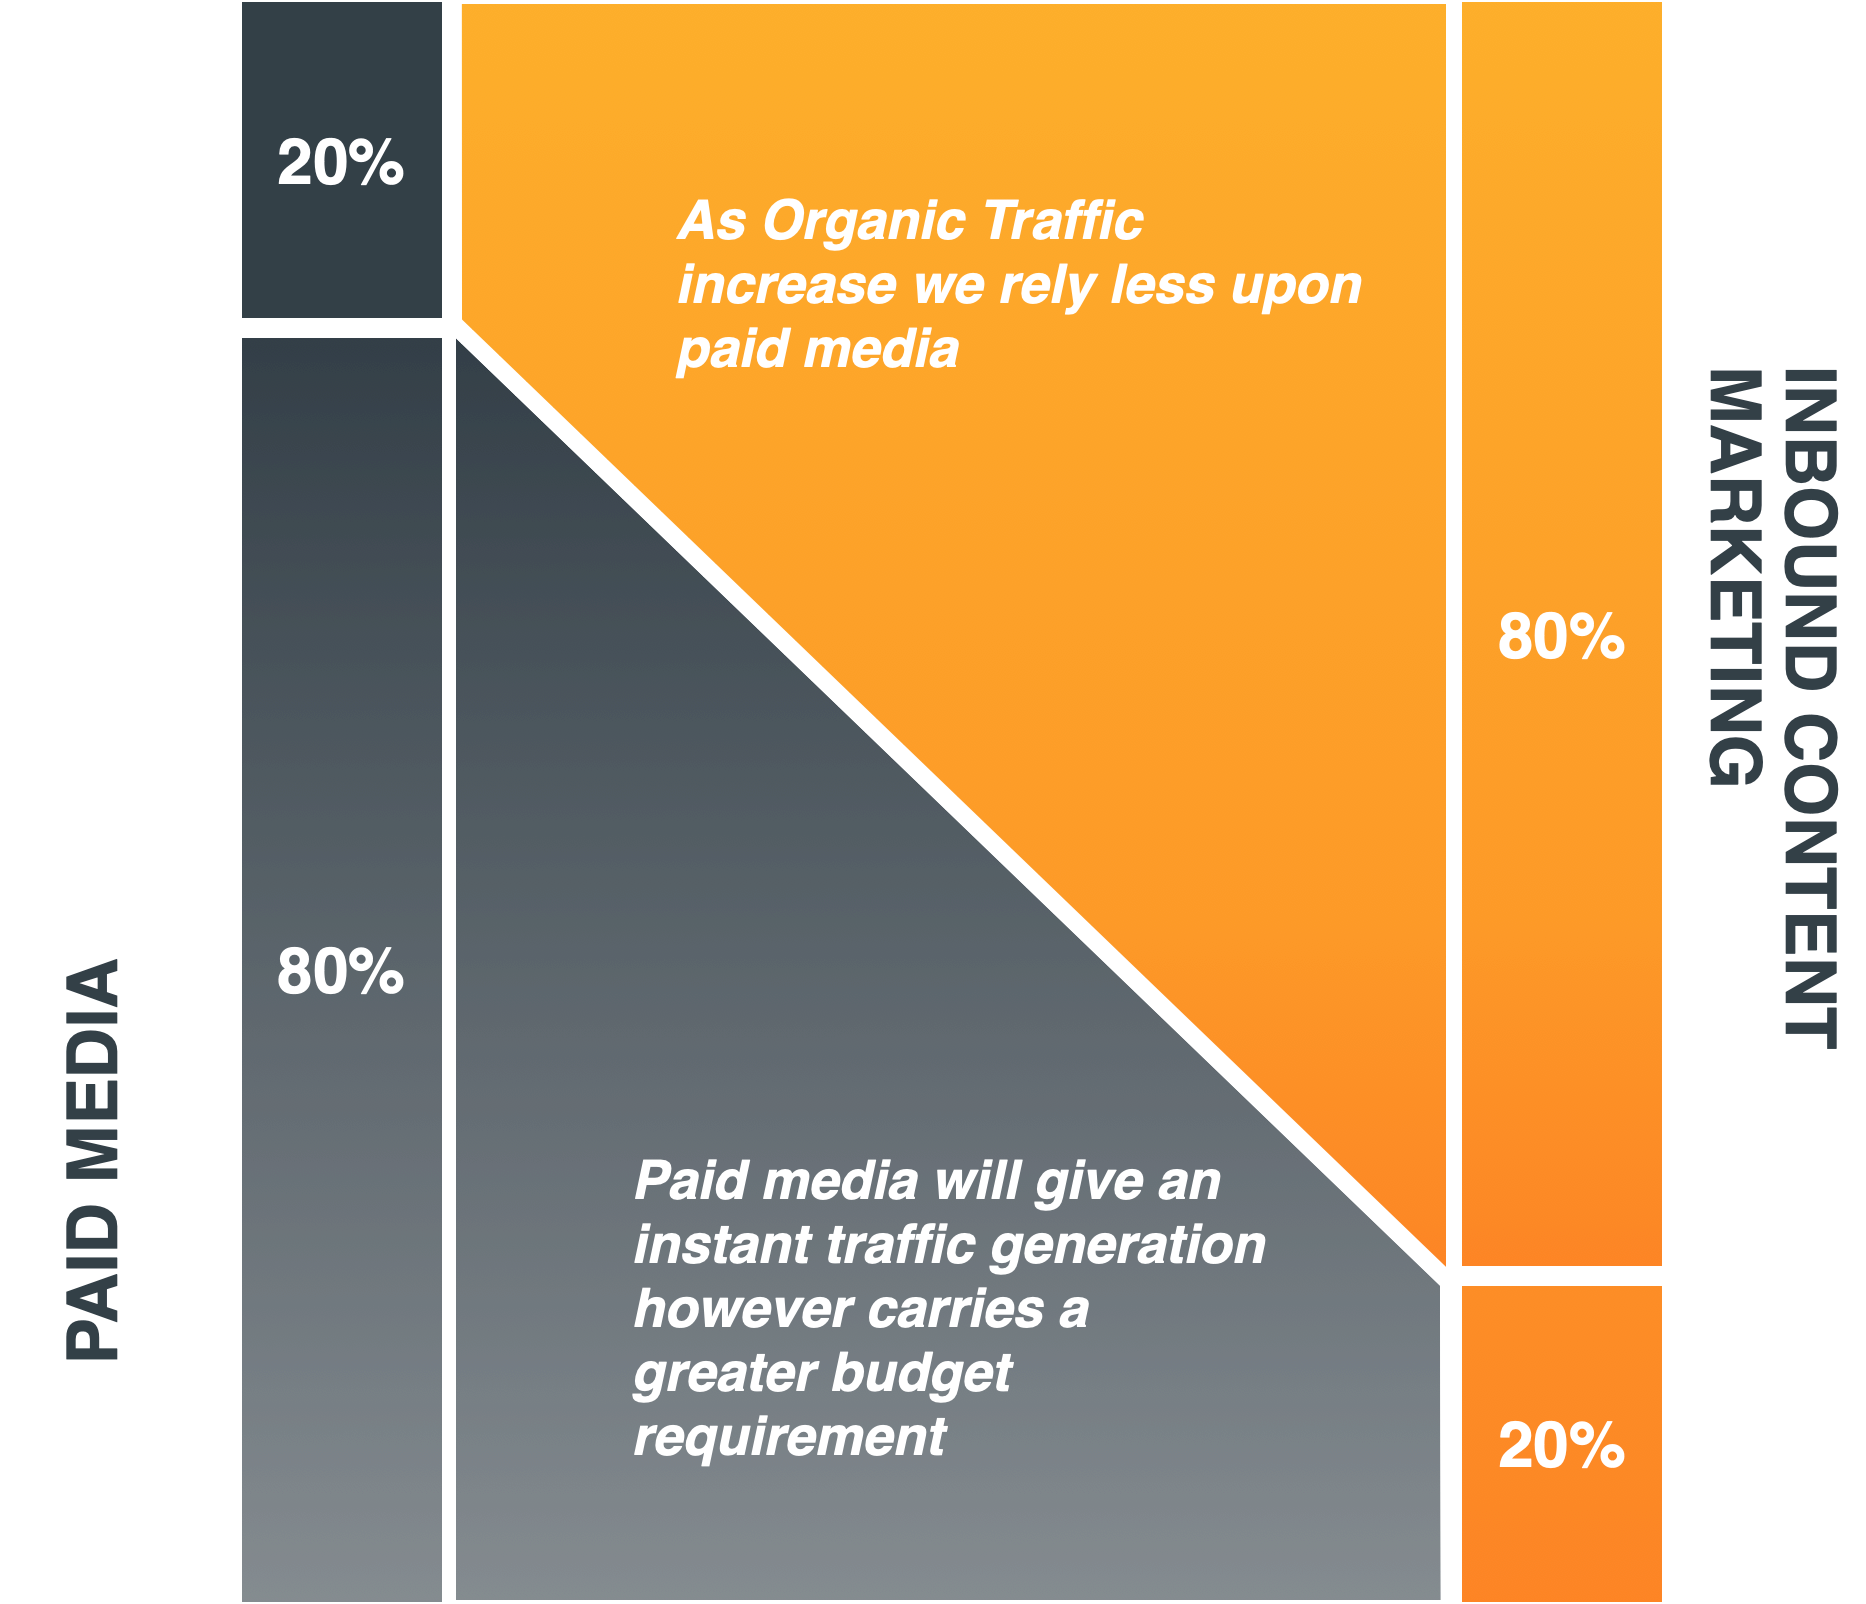 replacing paid media with organic traffic